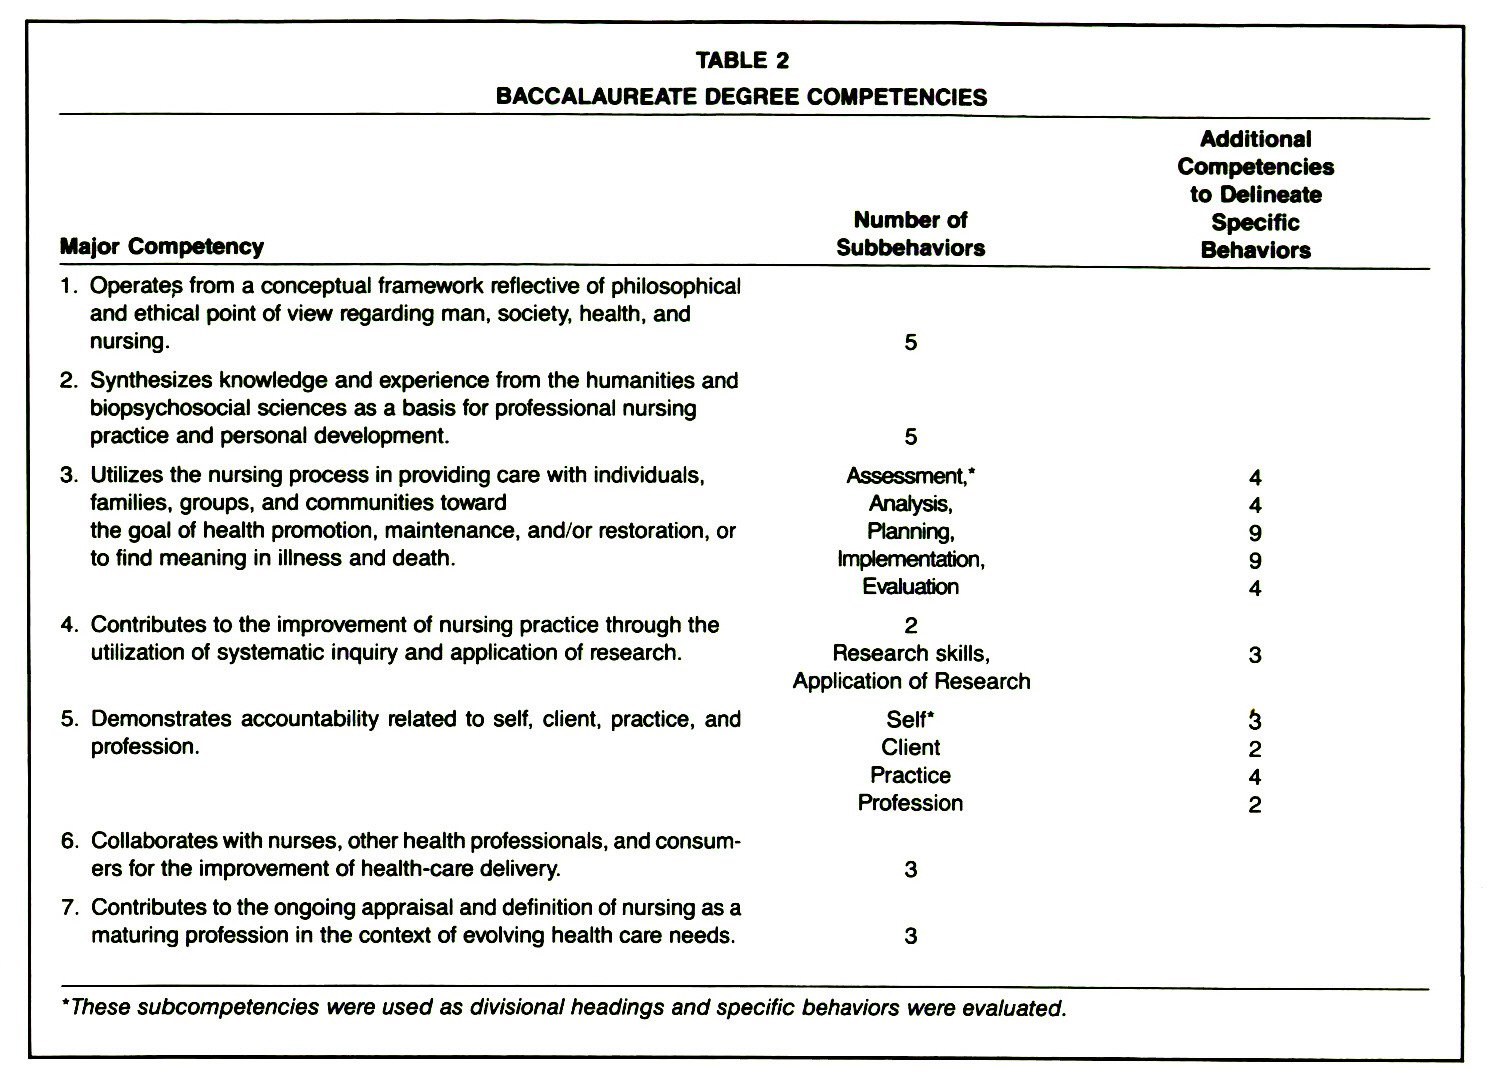 TABLE 2BACCALAUREATE DEGREE COMPETENCIES